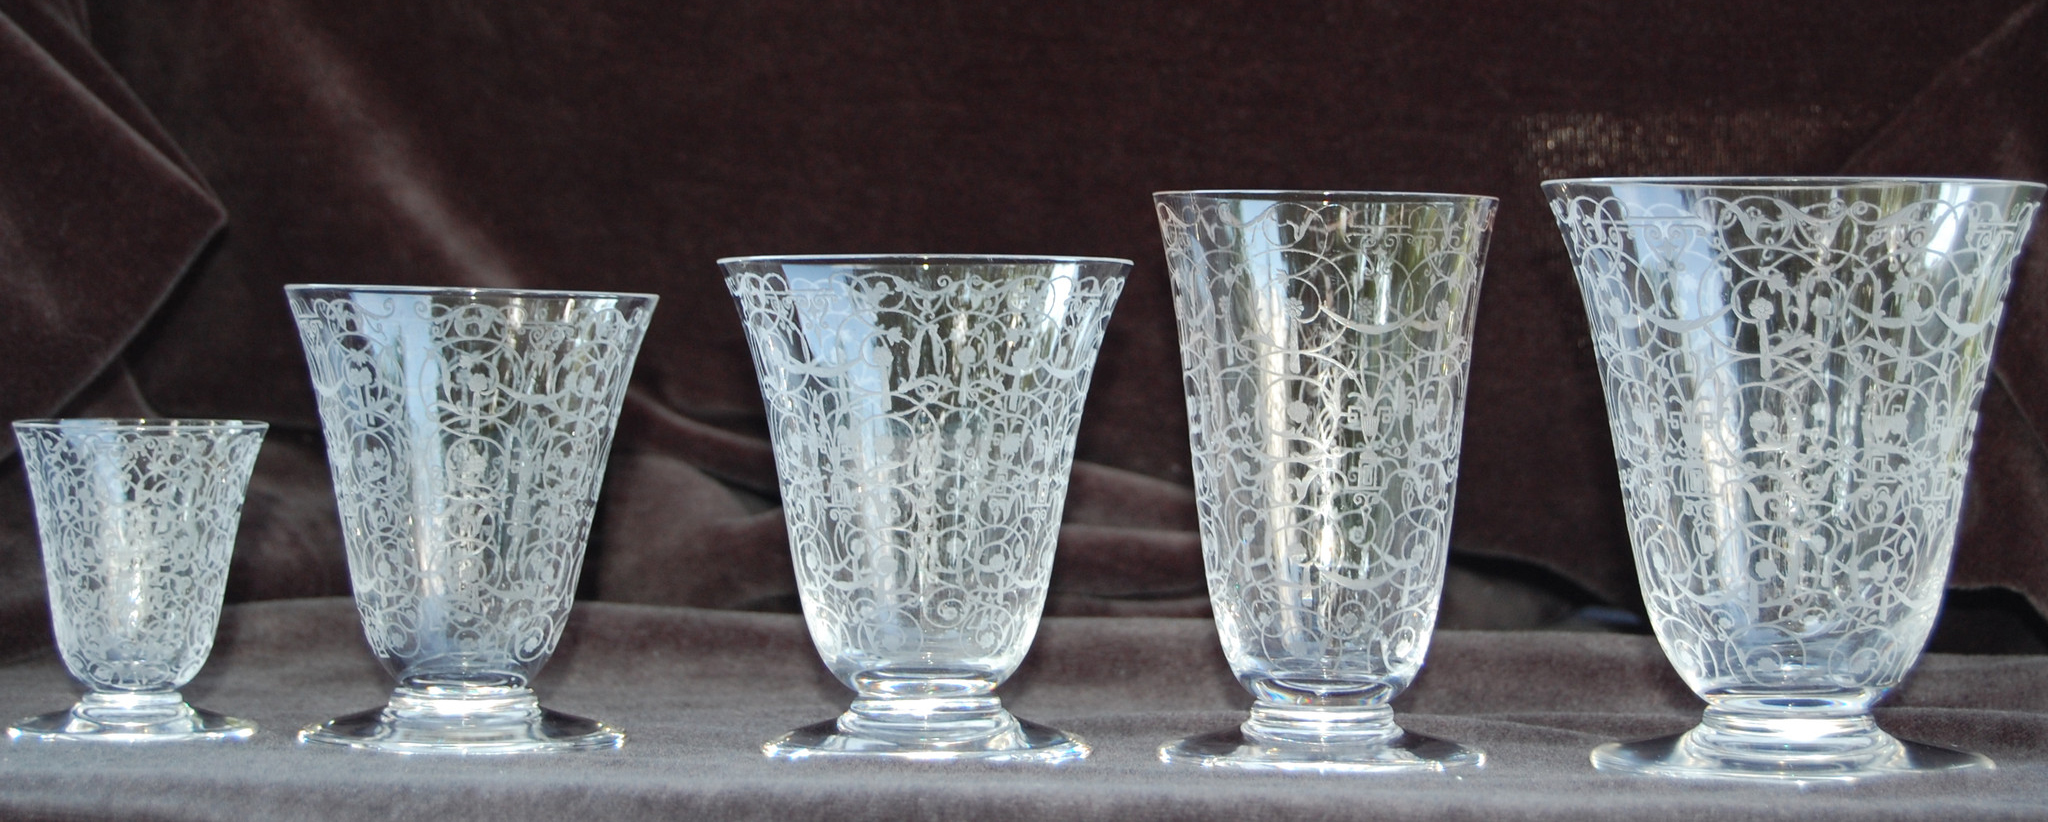 "French Etched Clear Glass Decanter and Barware Service, Baccarat, France, 1927-1970, 41 pieces in the ""Michaelangelo"" pattern"